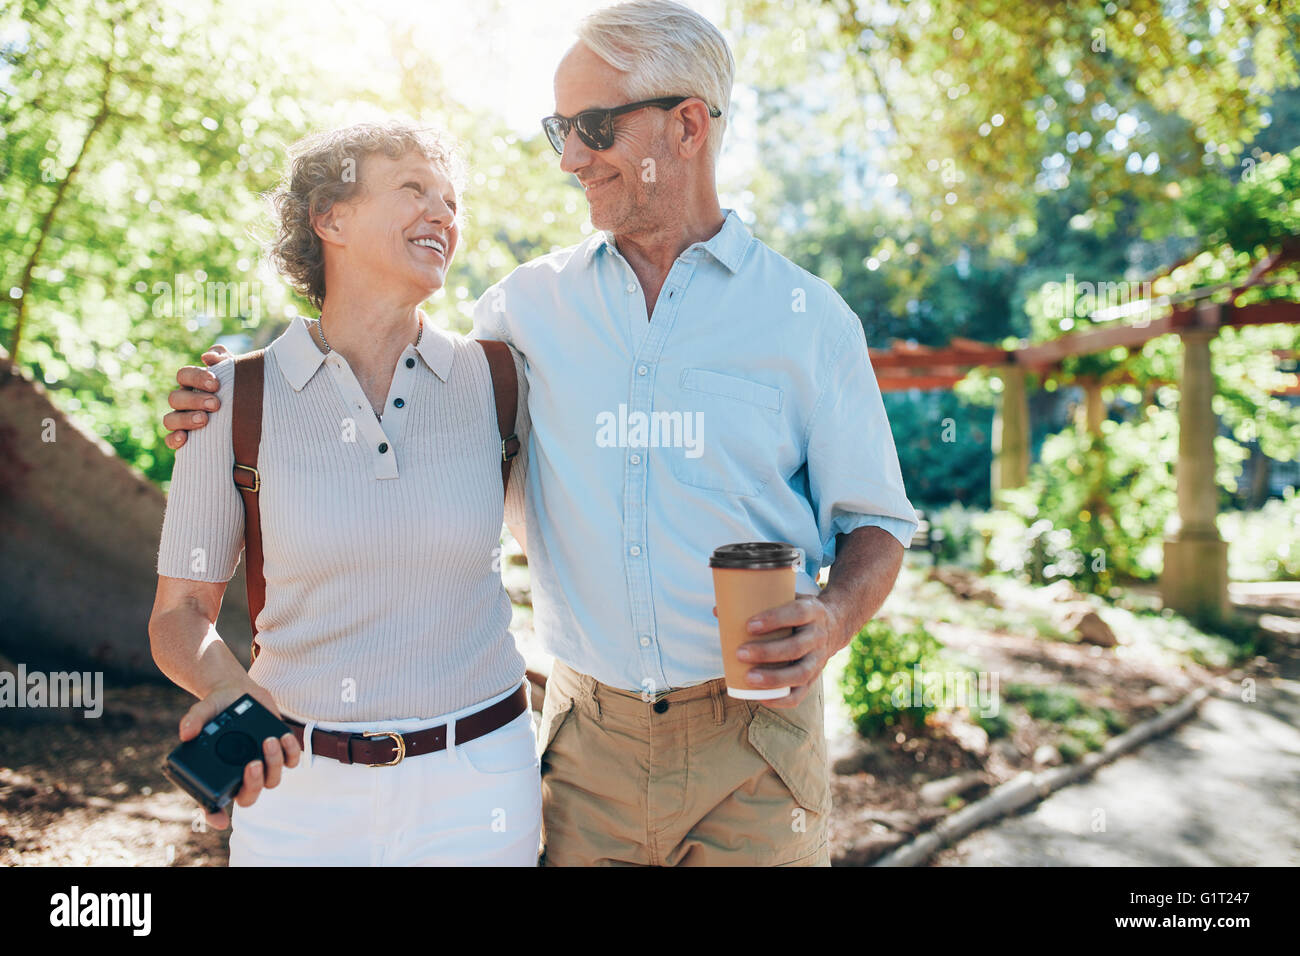 Portrait of happy mature couple walking together in a park. Husband and wife on a vacation. - Stock Image